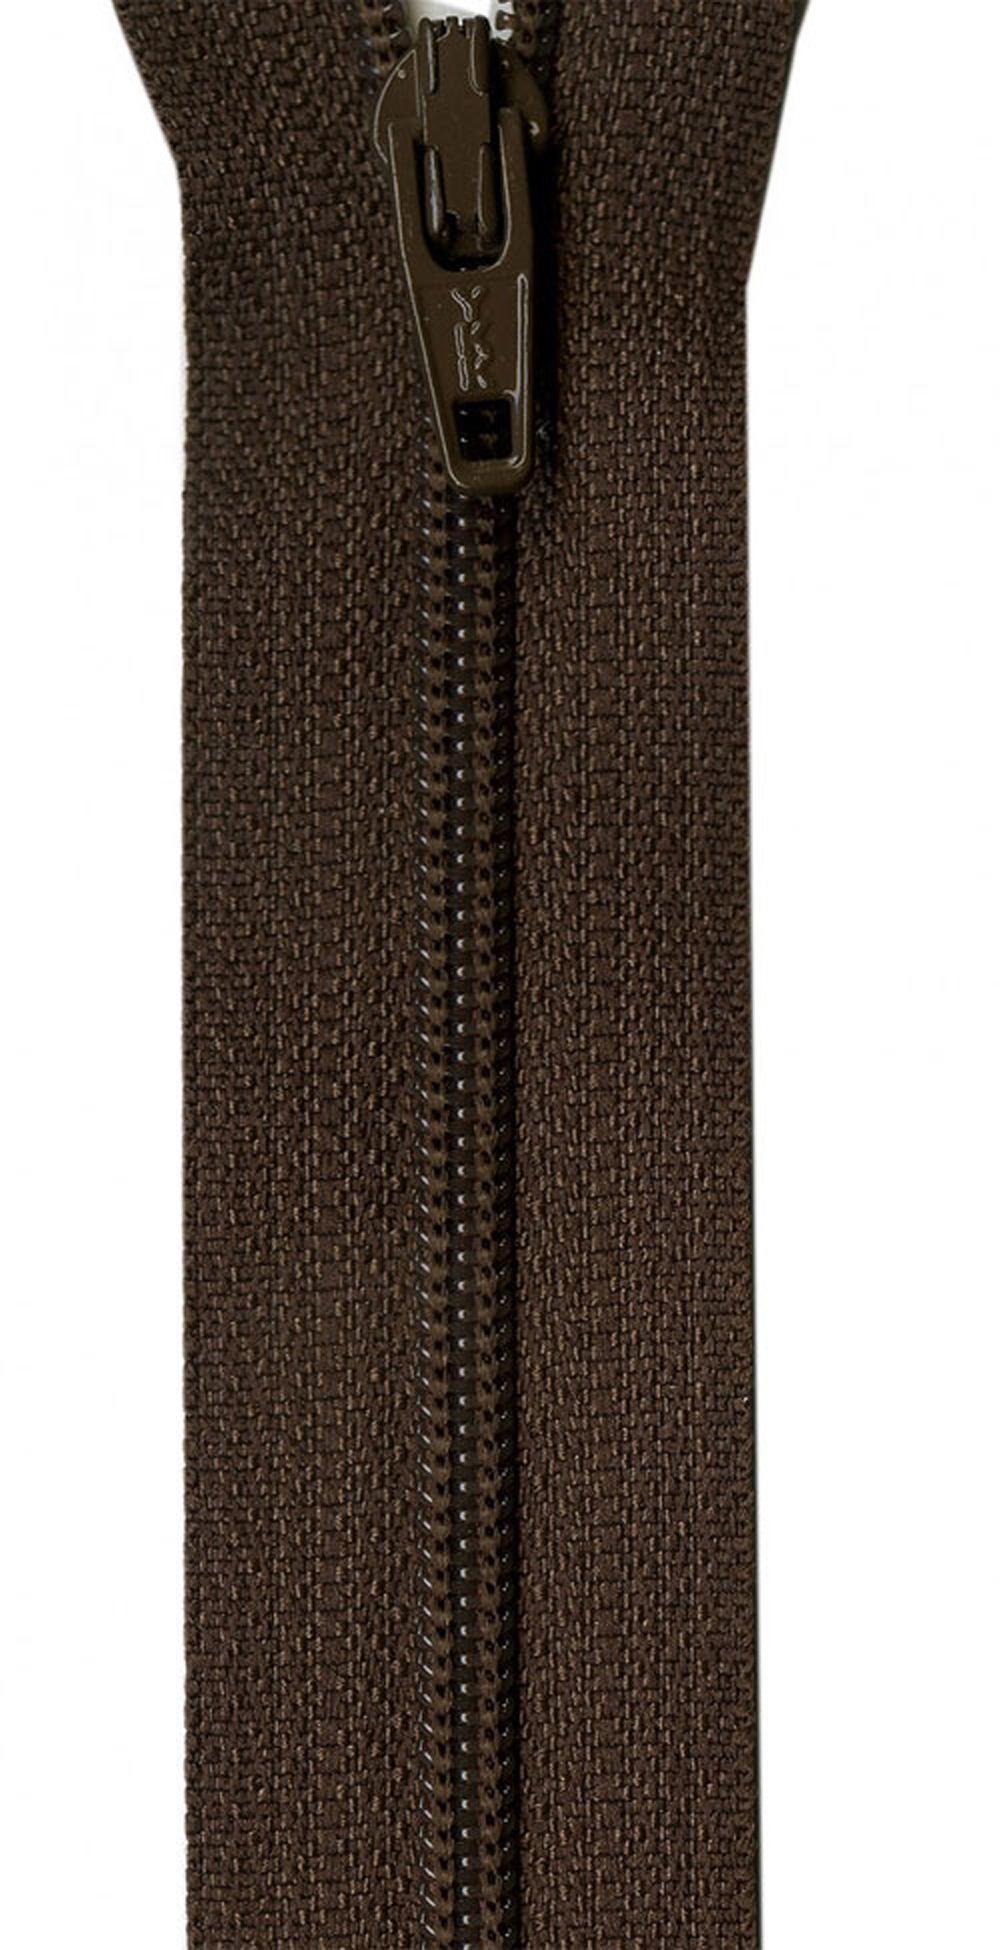 Zipper-YKK-14-inch-Coffee-Bean